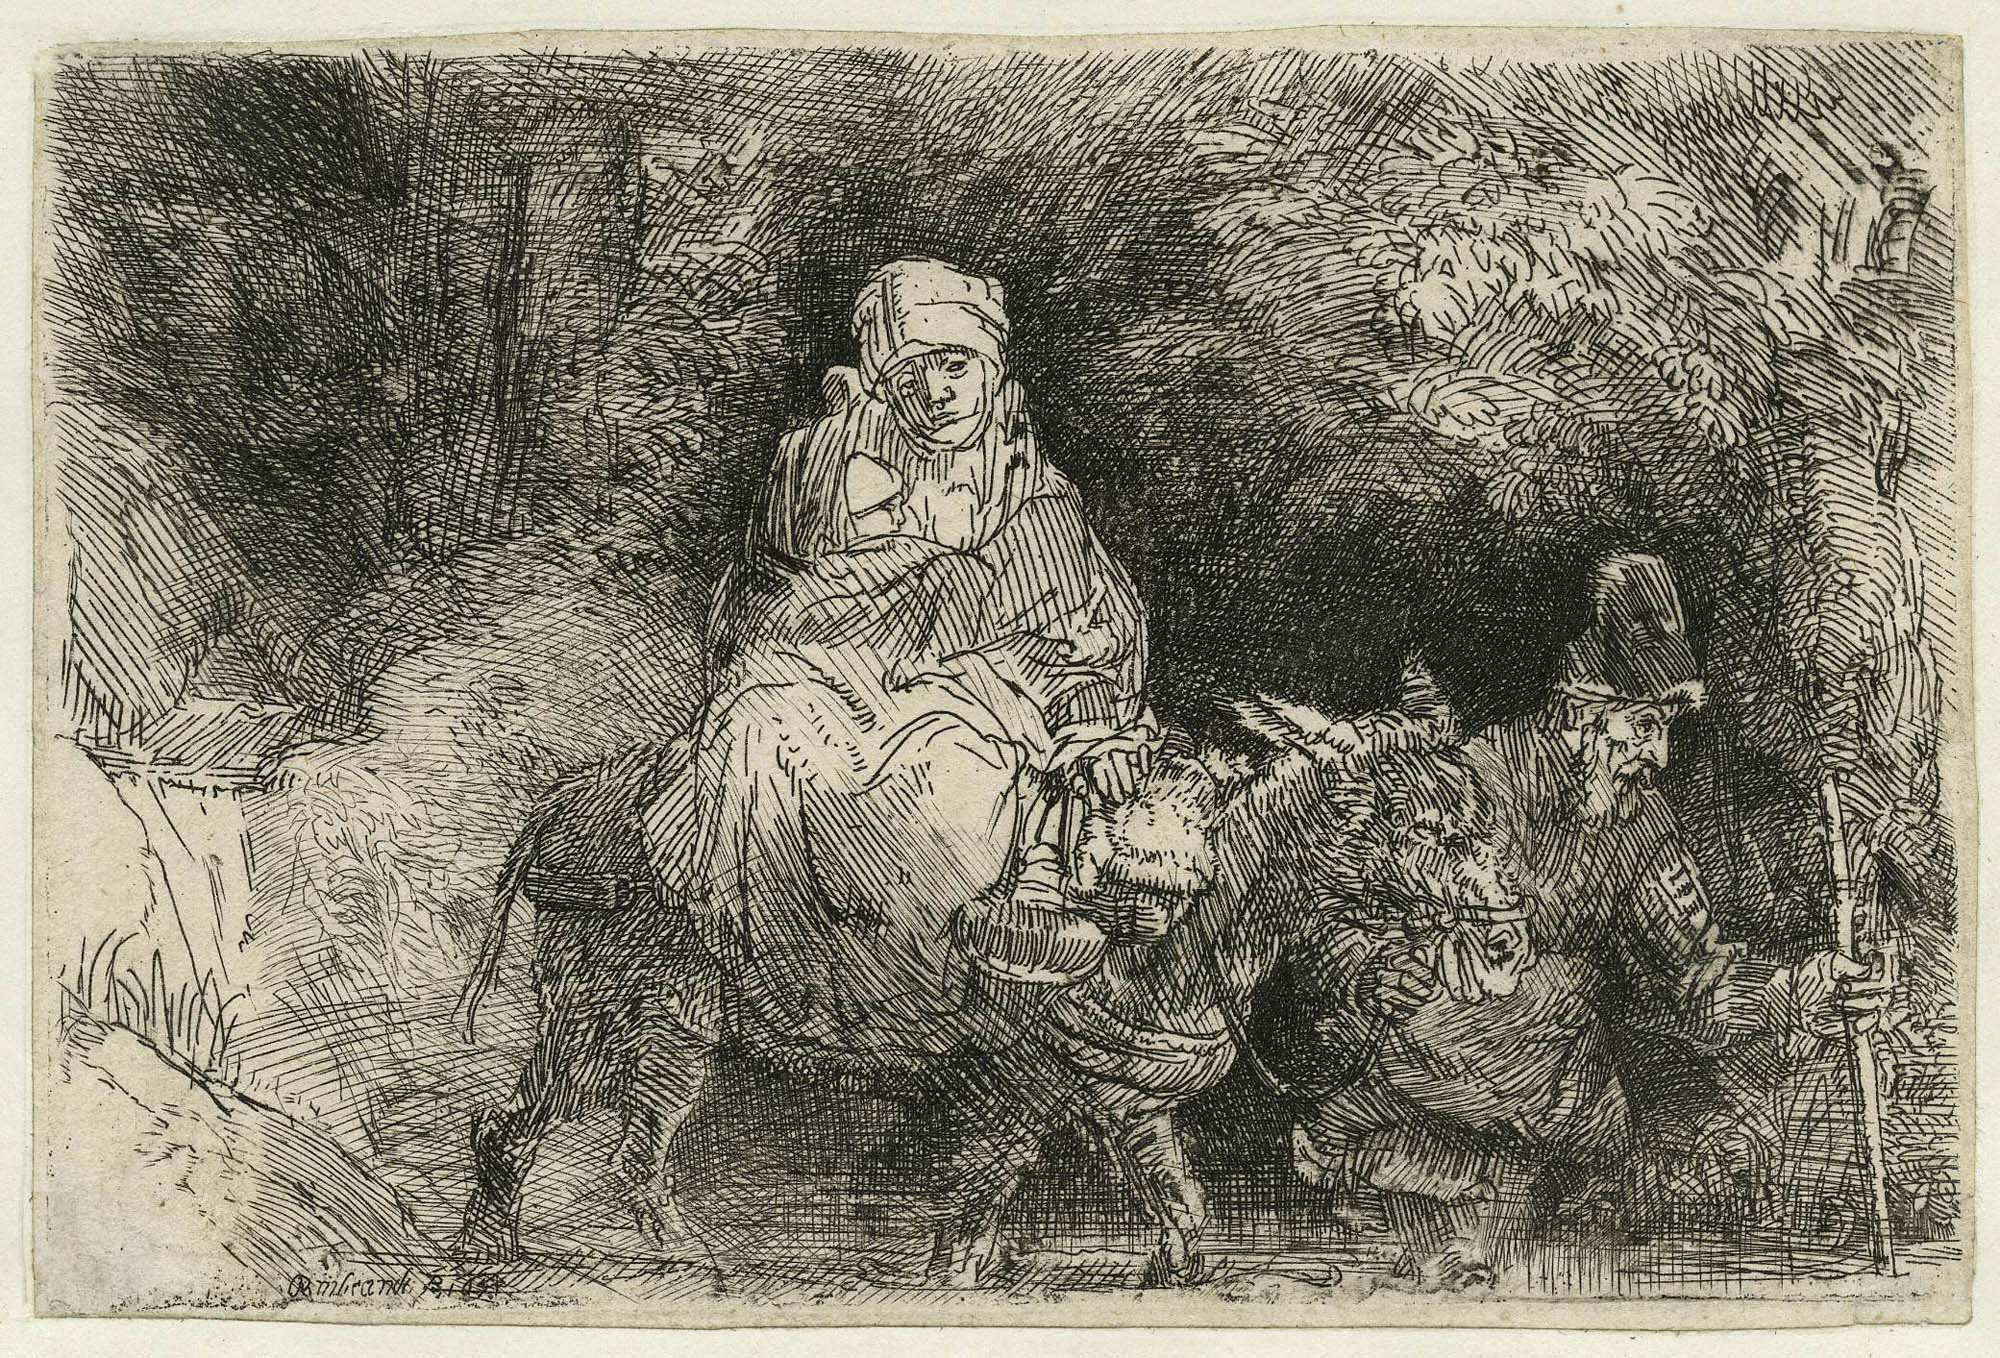 a sketch by Rembrandt of a person riding a mule